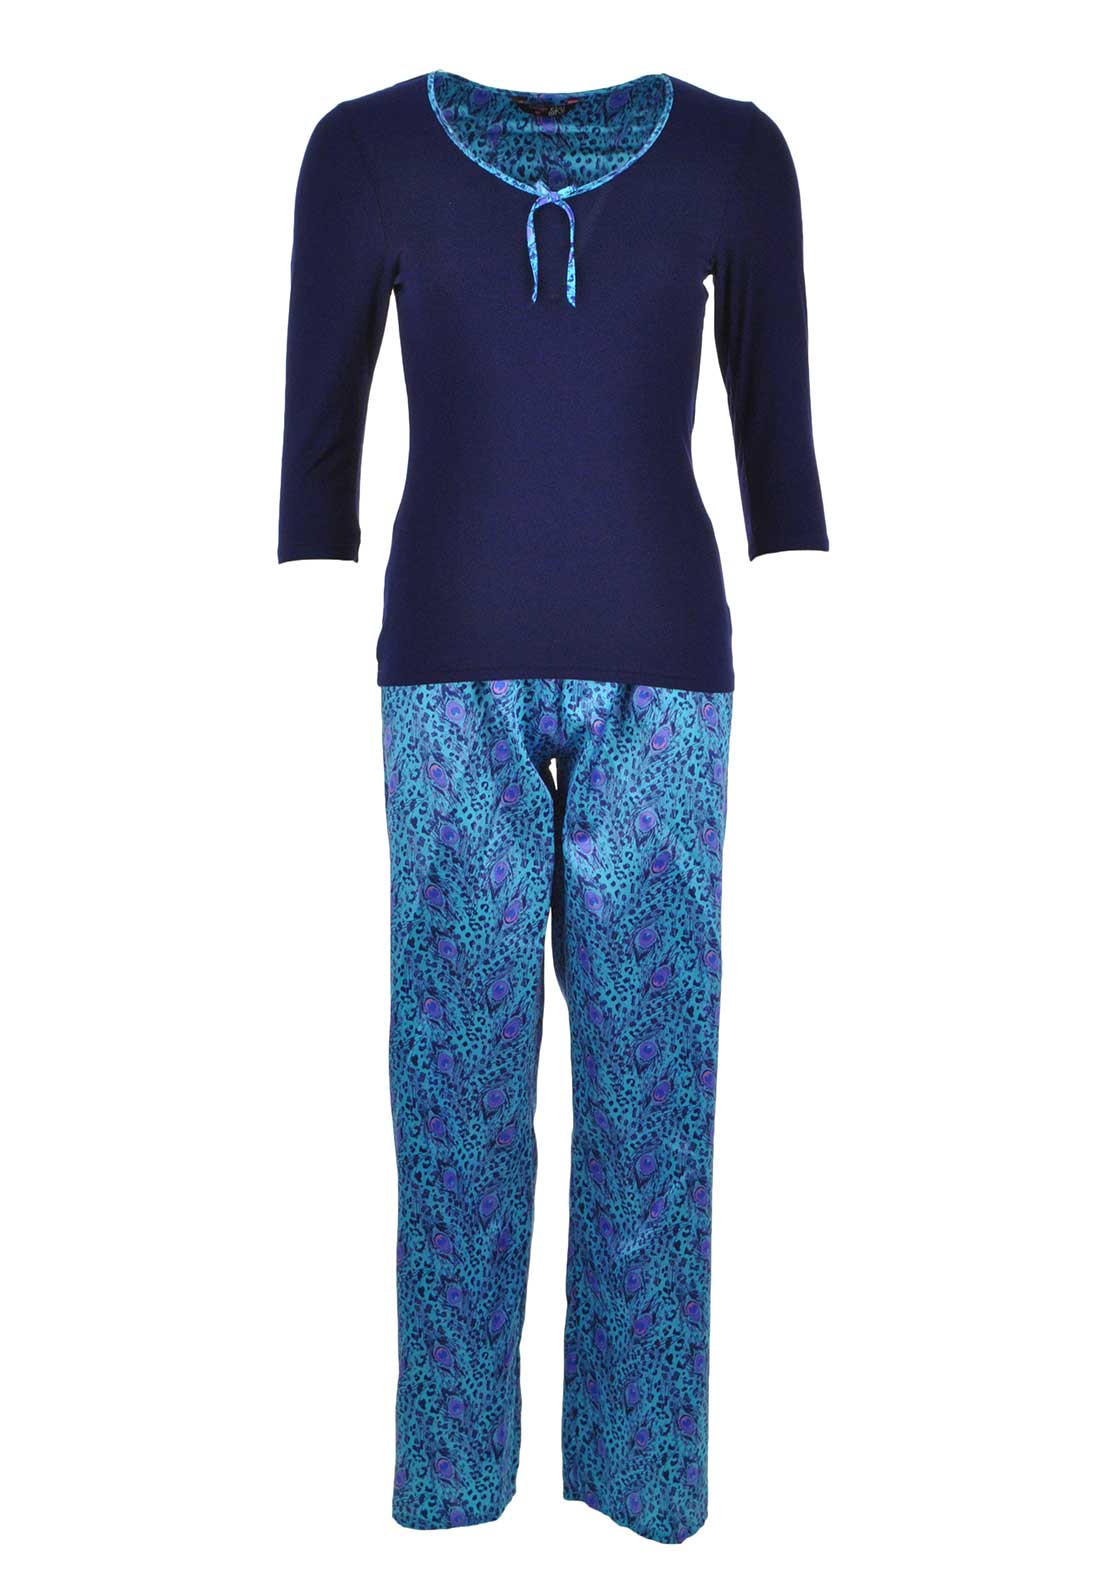 Indigo Sky Peacock Print Pyjama Set, Navy and Blue